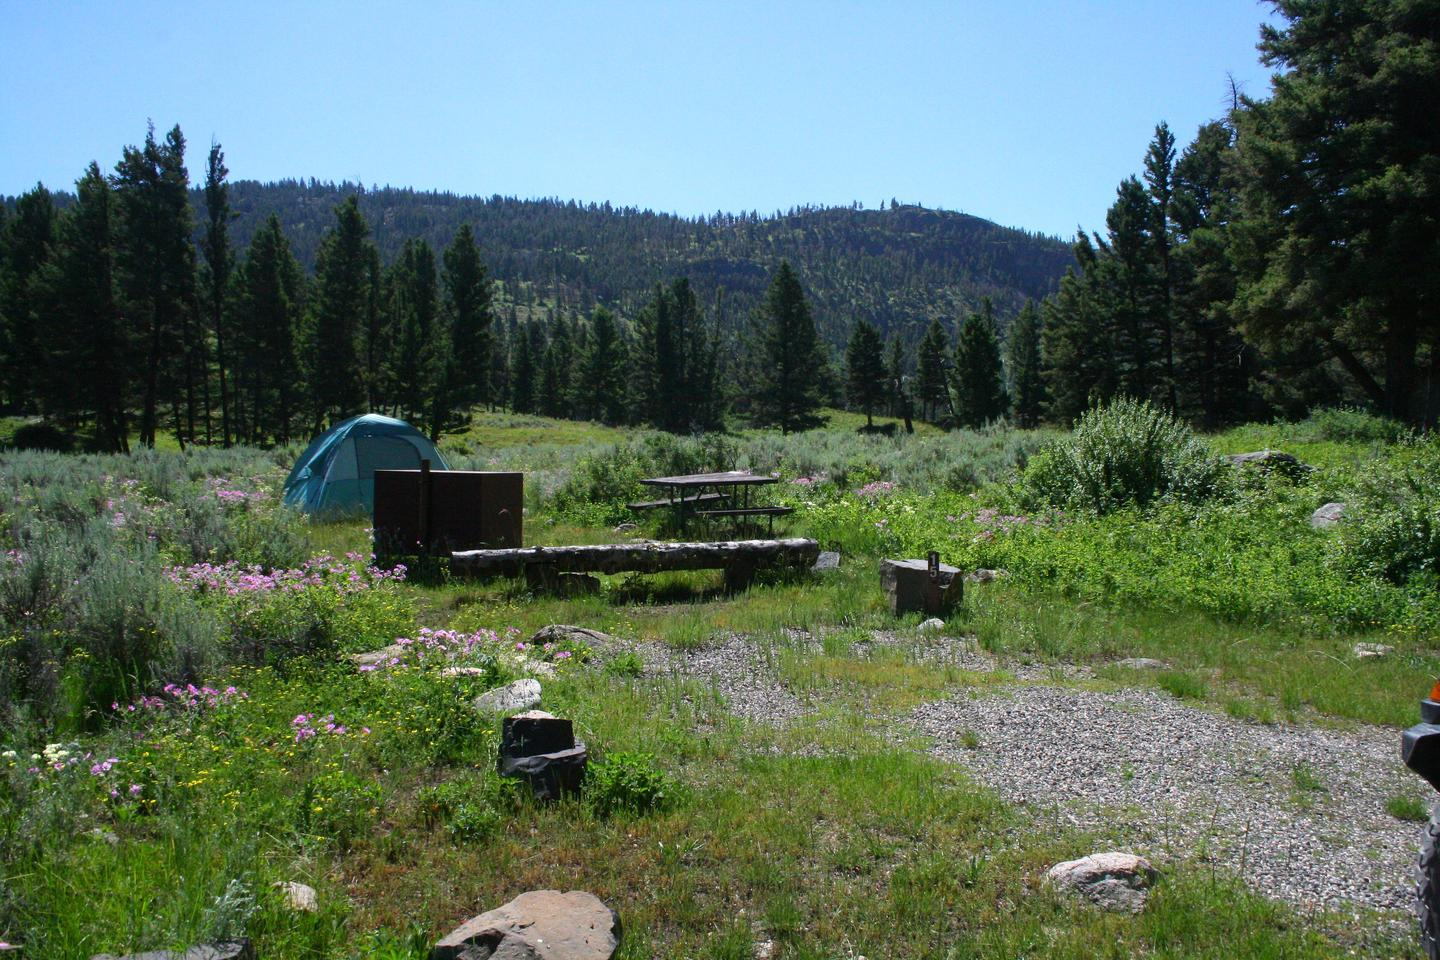 Slough Creek Campground site #15...Slough Creek Campground site #15